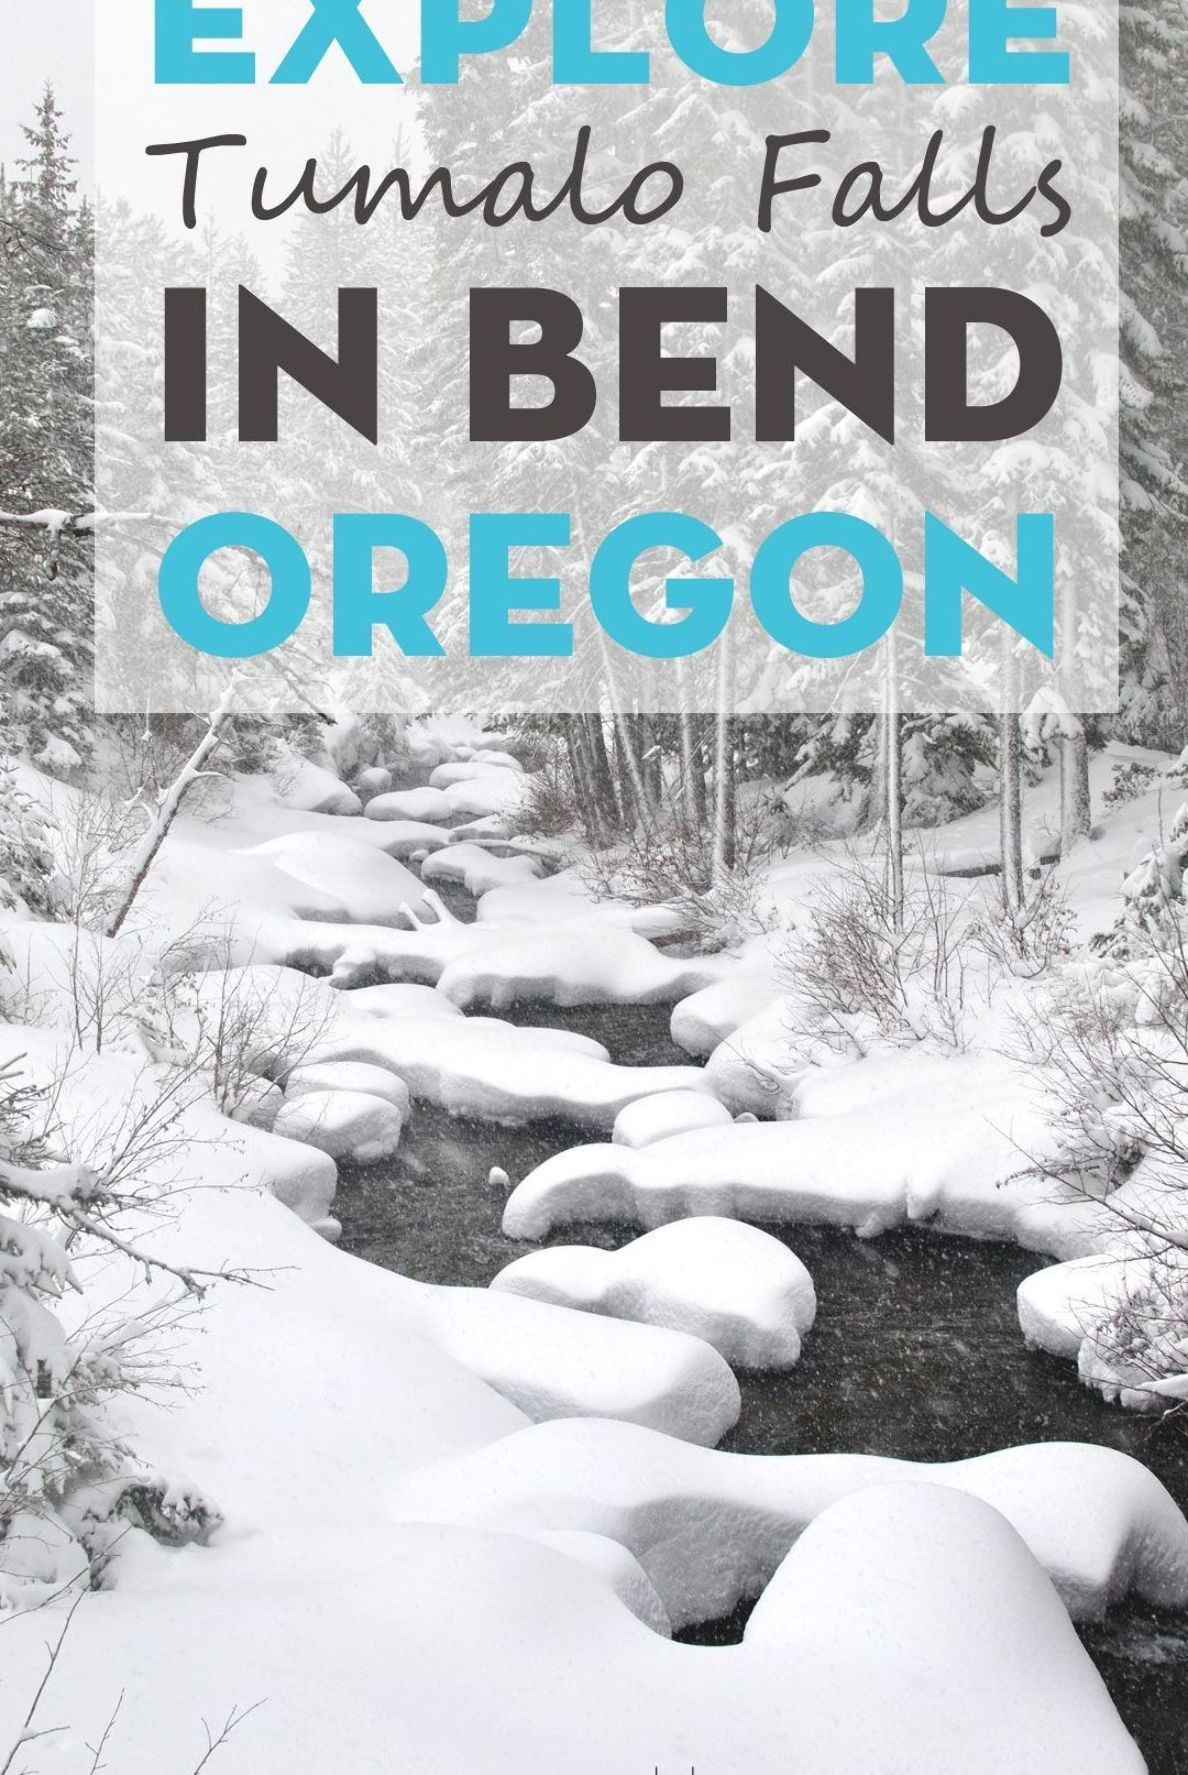 Guide to exploring Tumalo Falls trails in during winter. The beauty of Bend Oregon is that there are activities to enjoy during every season so try snowshoeing or cross country skiing to a gorgeous icy waterfall, you won't regret it! #bendoregon #winter #bendtrails #oregon #traveloregon #visitbend #winterhikes #winterwonderland #waterfall #icywaterfall #winterwaterfall